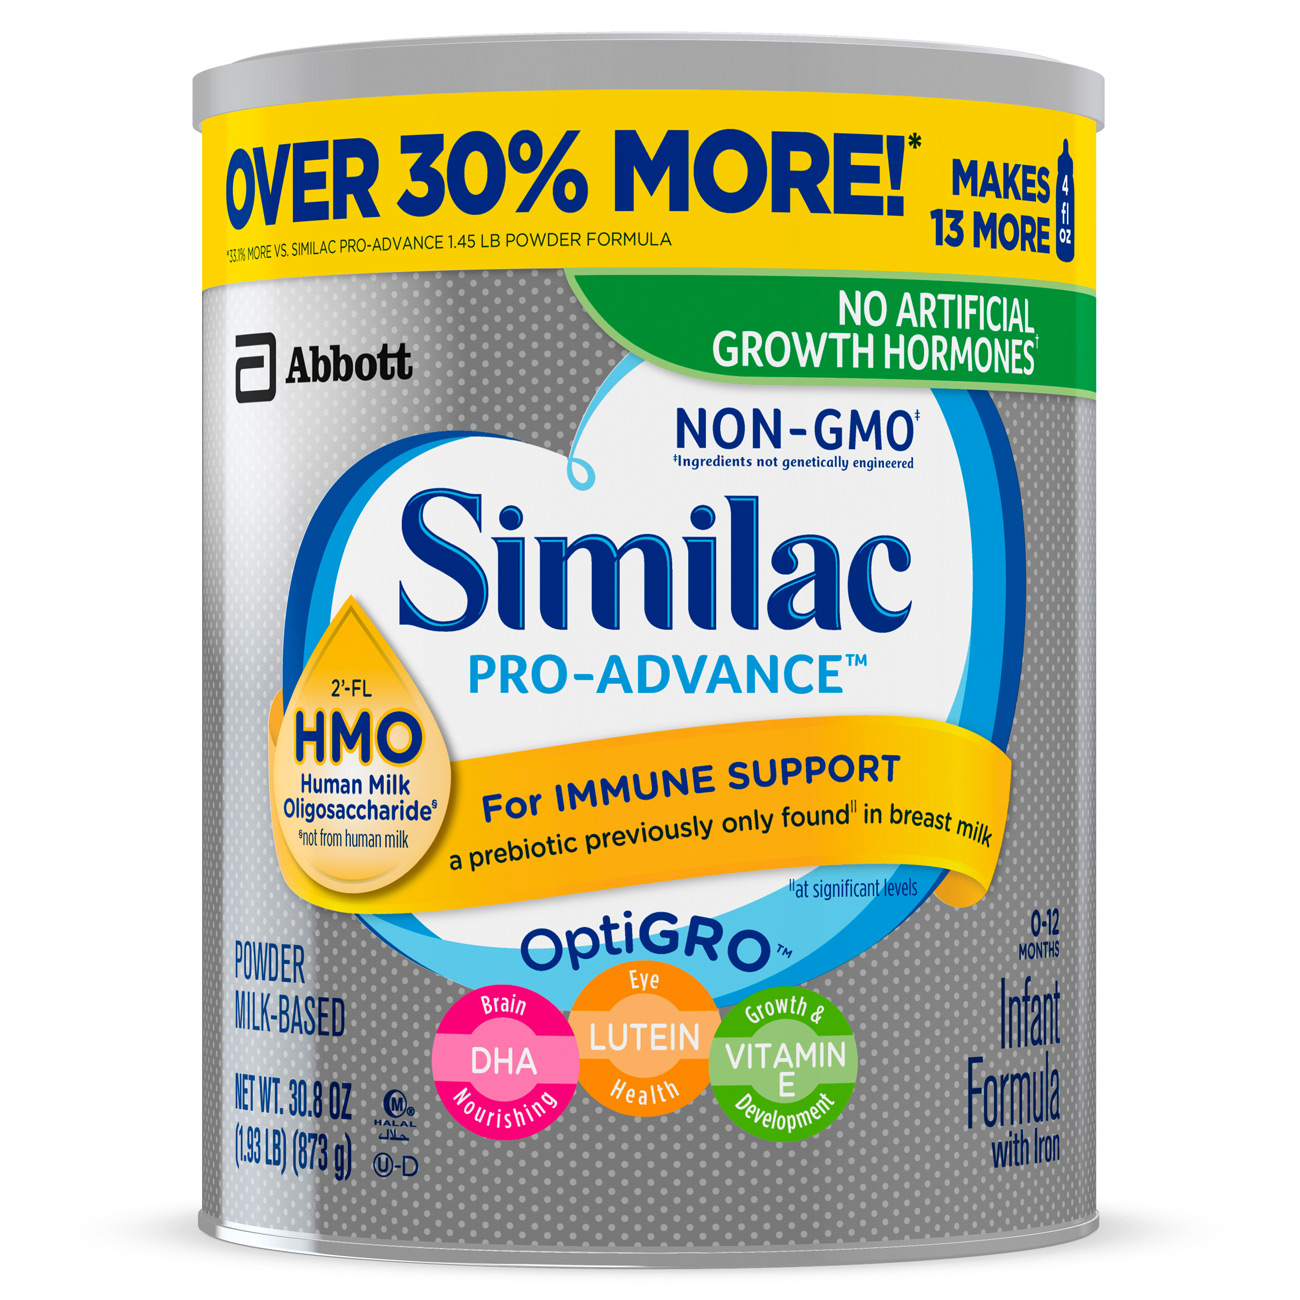 (Buy 2, Save $6) Similac Pro-Advance Infant Formula with Iron, with 2'-FL HMO, For Immune Support, Baby Formula, Powder, 30.8 ounces